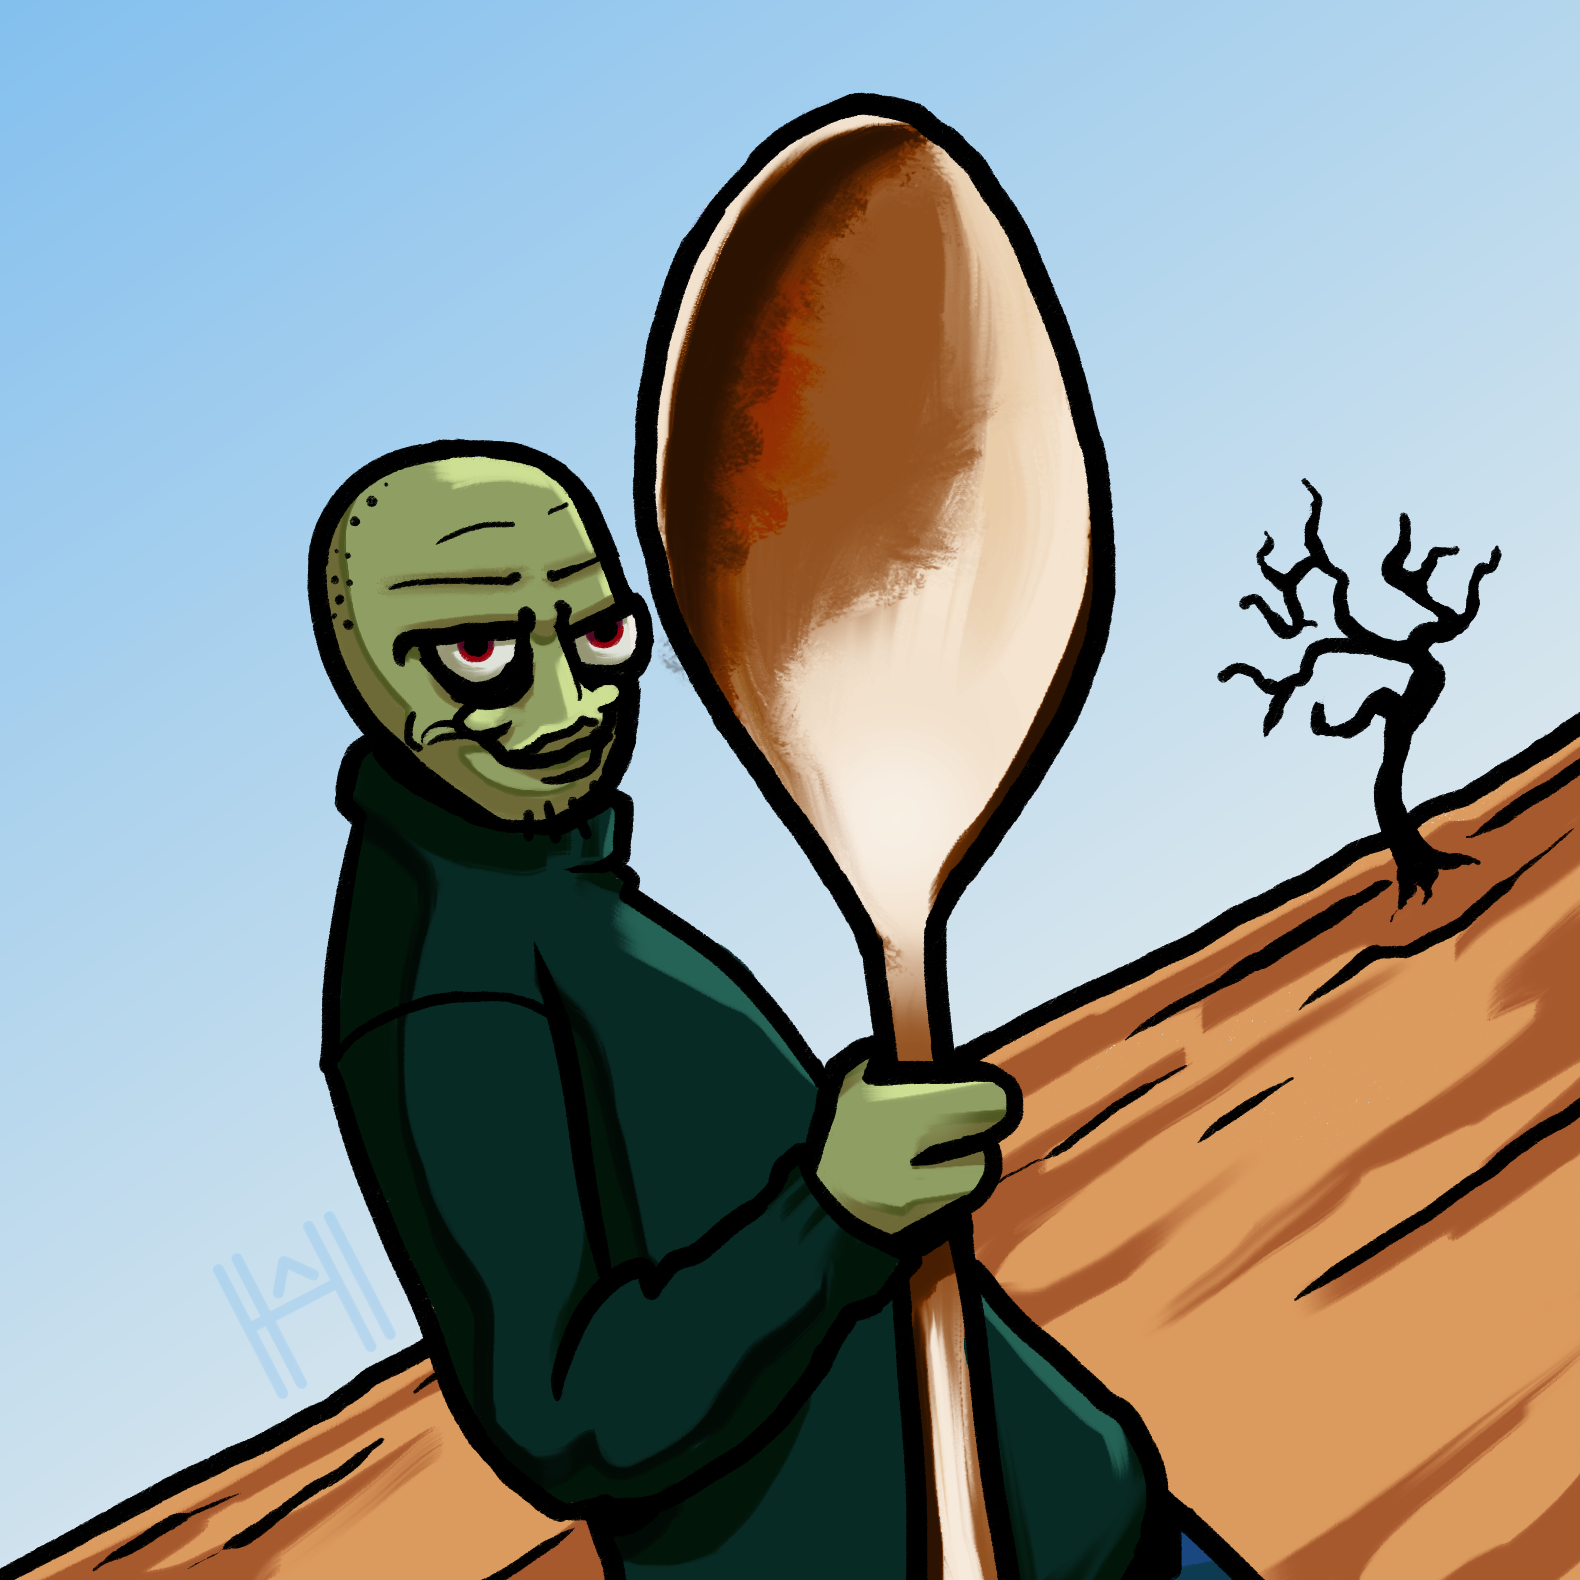 Day23: Salad Fingers